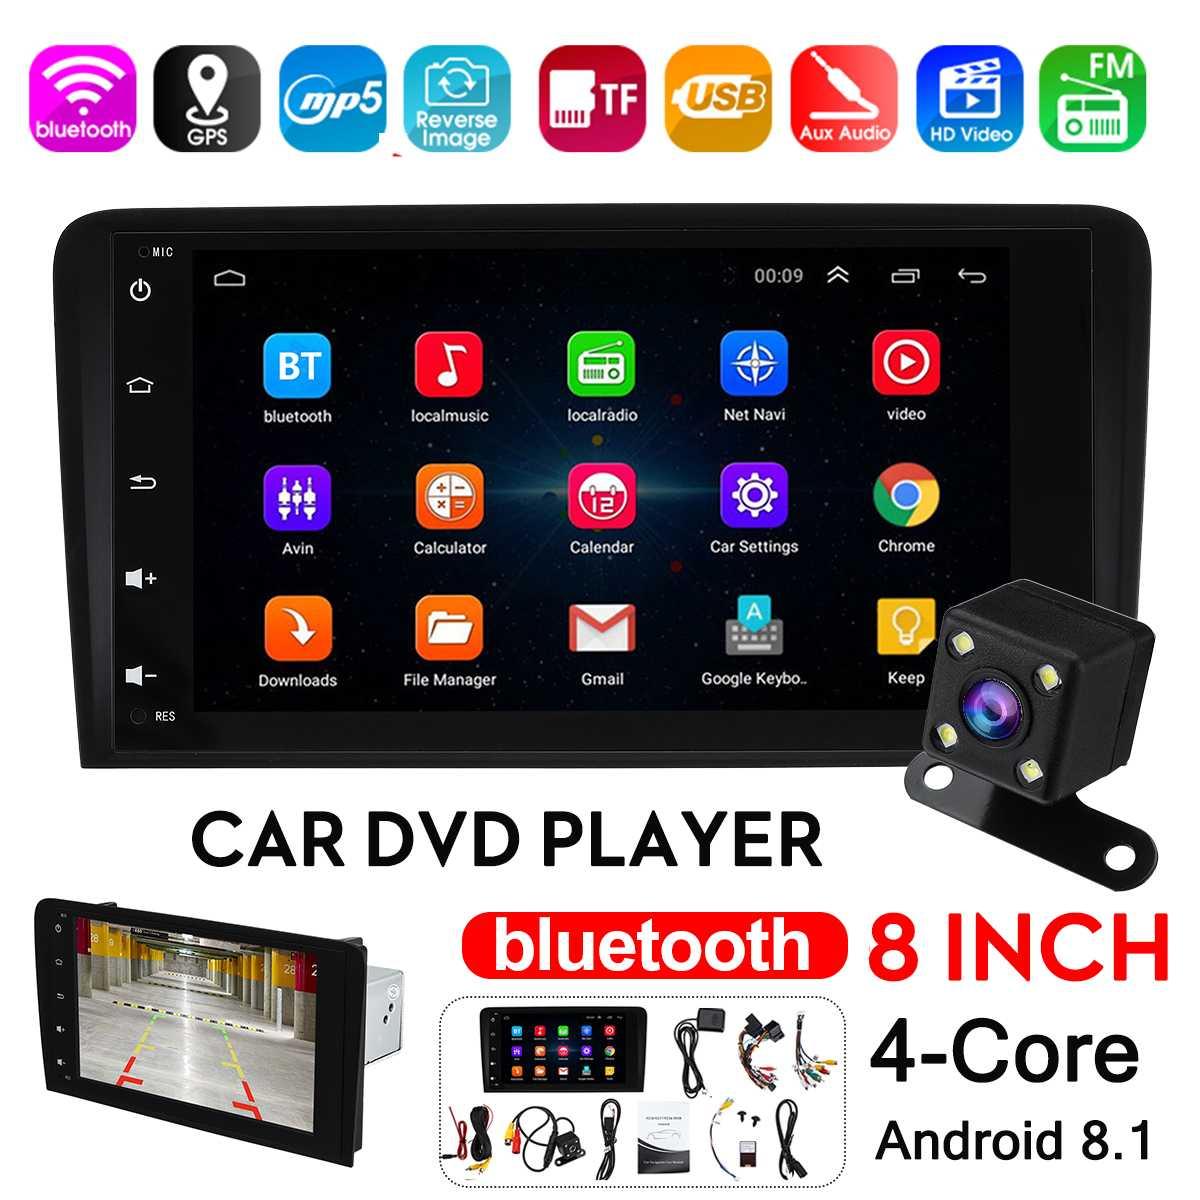 8'' Android 8.1 Car <font><b>Multimedia</b></font> Player GPS Stereo Radio DVD Player WIFI bluetooth Rear View Camera 16G for <font><b>Audi</b></font> <font><b>A4</b></font> S4 <font><b>B6</b></font> B7 image